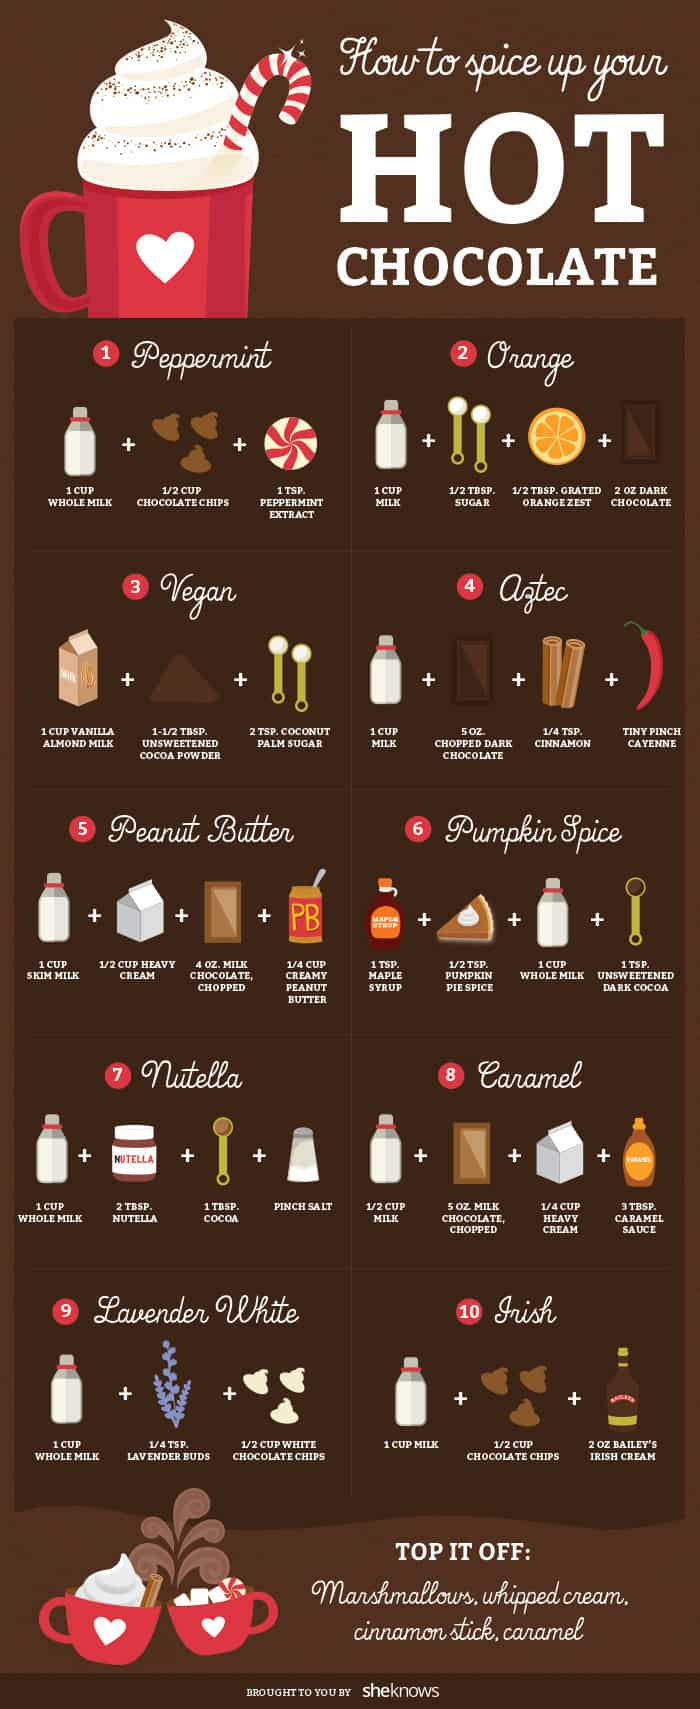 18 recipes for a delicious cup of hot chocolate